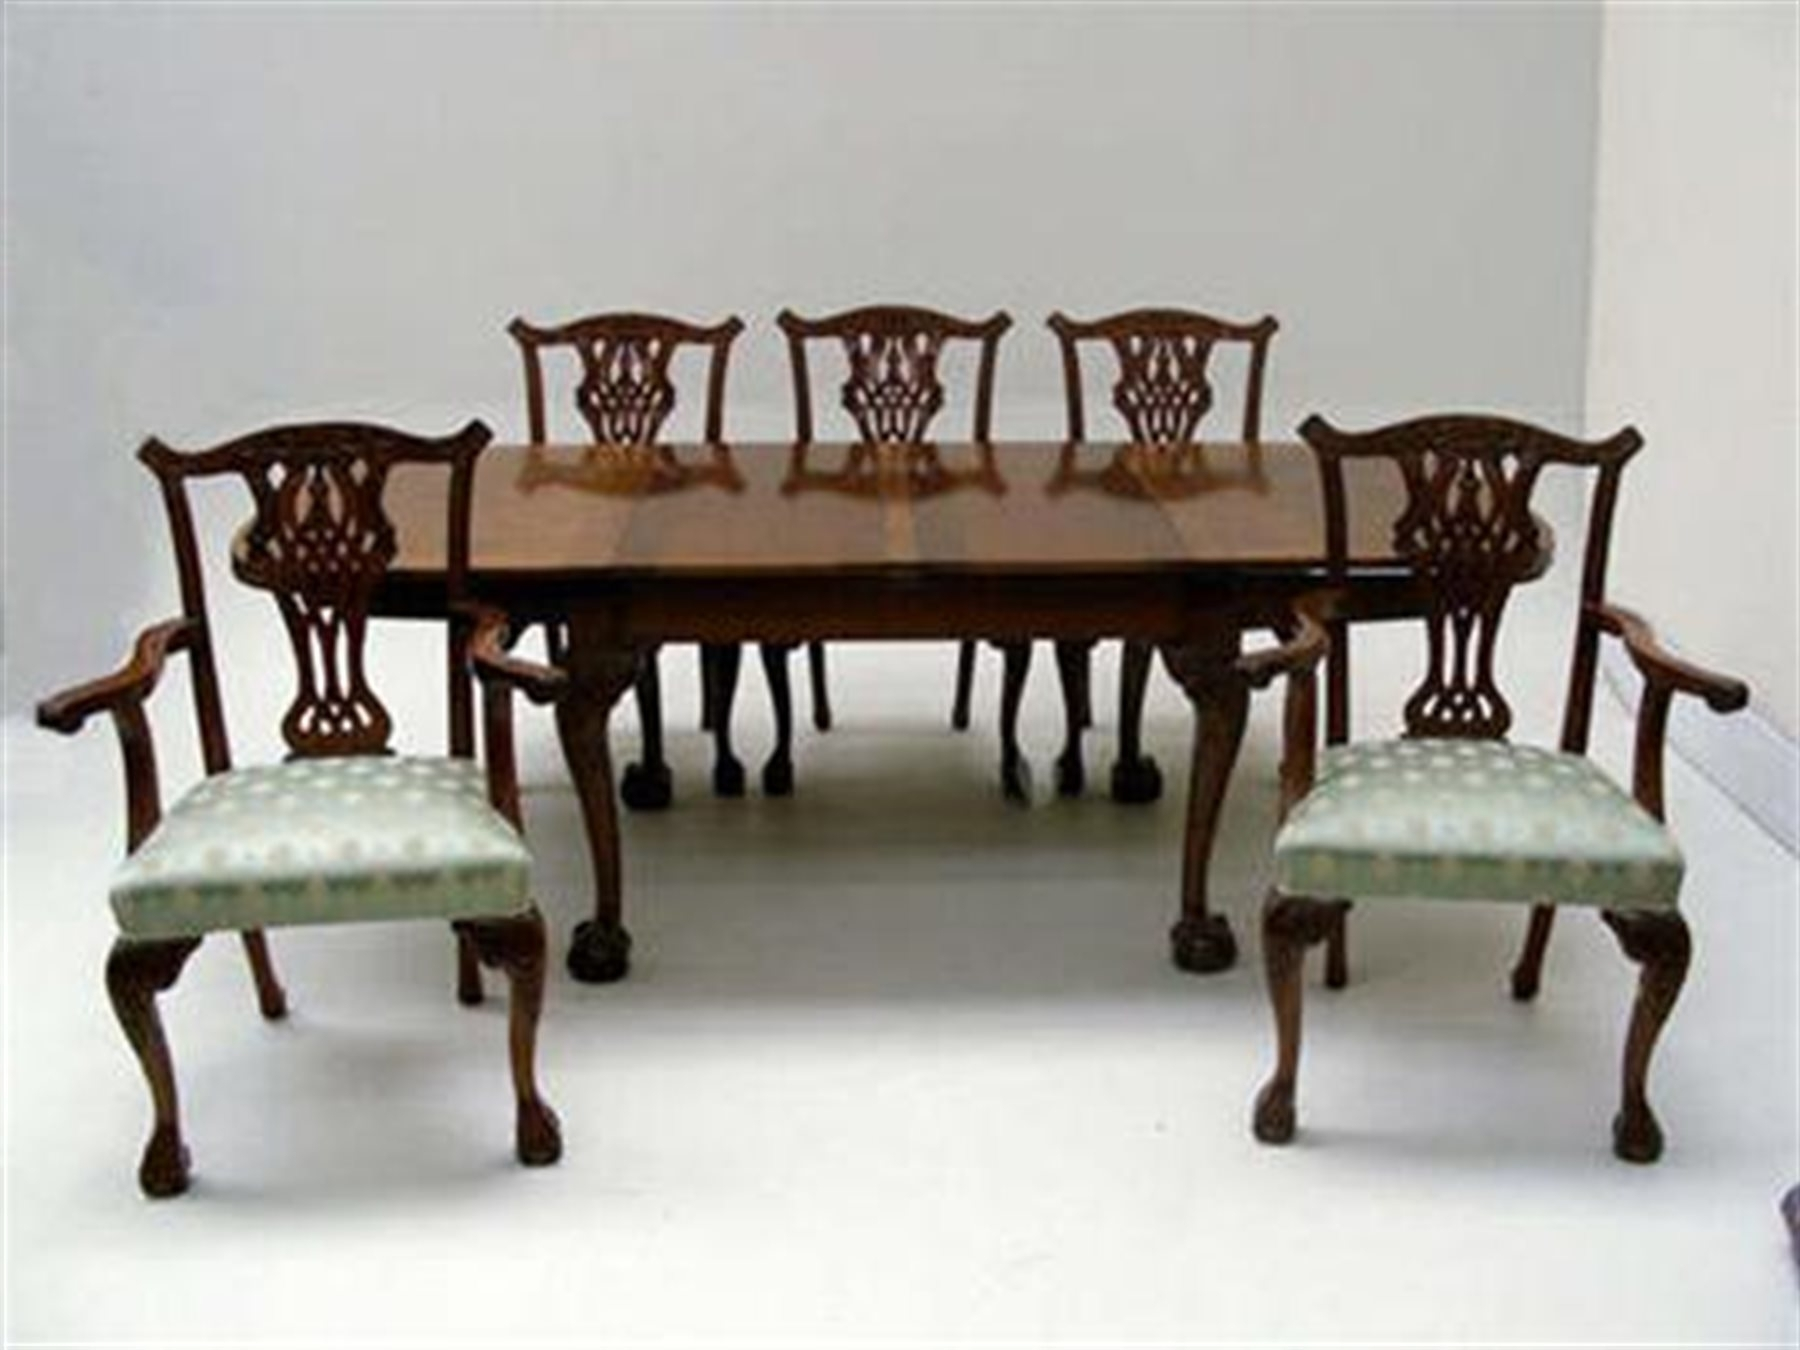 Early 20Th Century Mahogany Extending Dining Table With Ball And intended for Well-known Mahogany Extending Dining Tables And Chairs